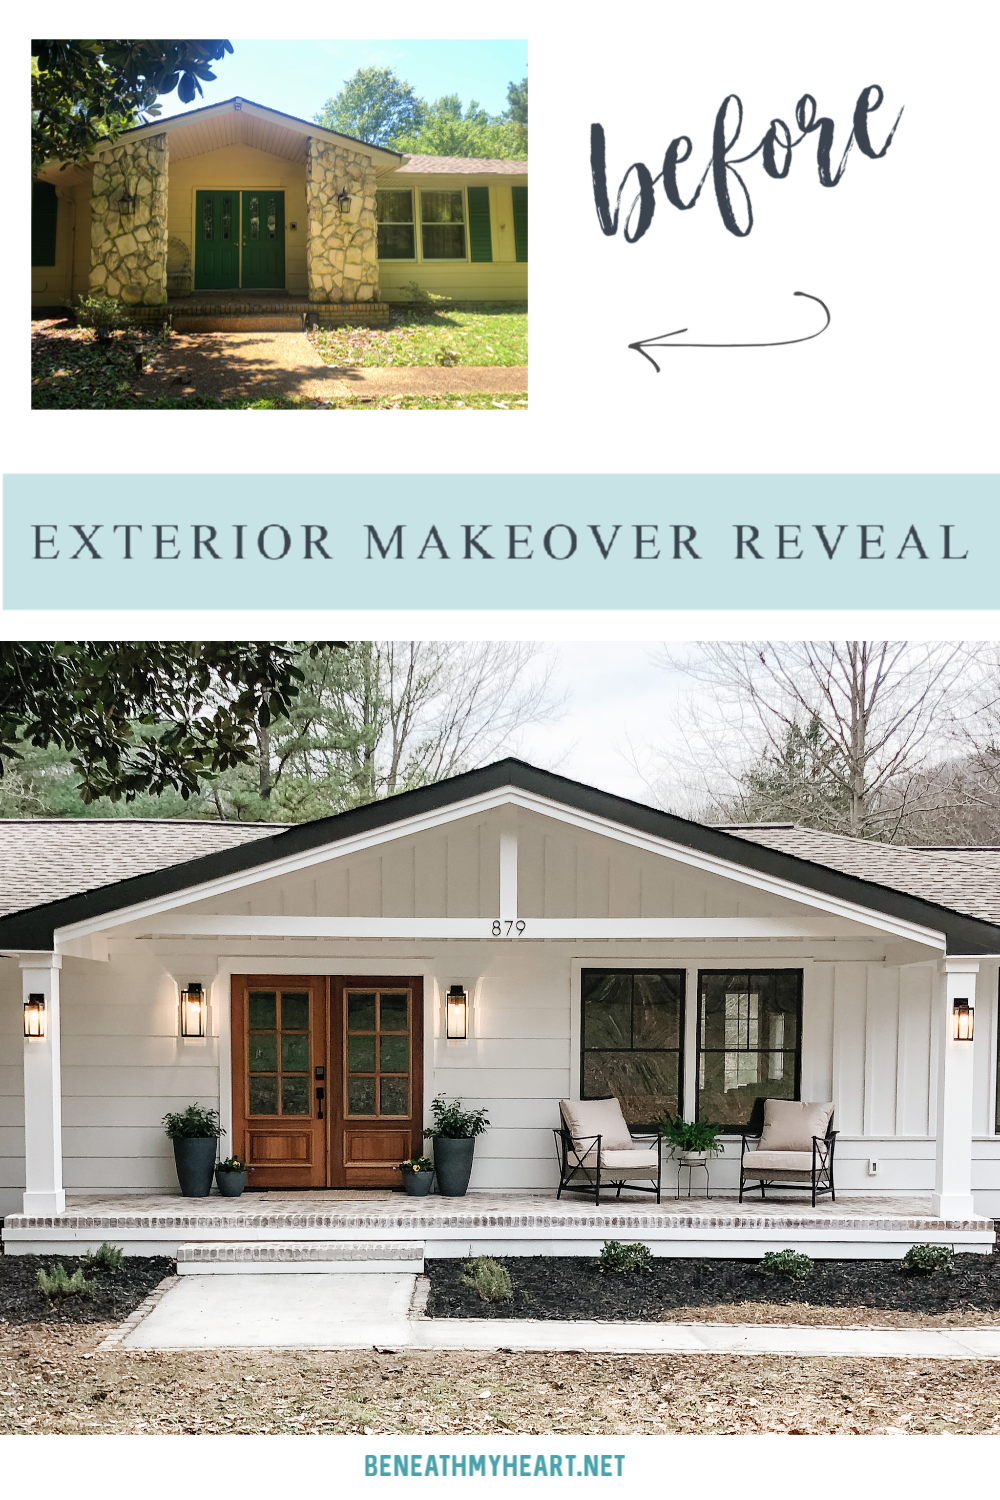 Check out the amazing before and after pictures of the 1970's exterior makeover!  @lowes #exteriormakeover #homemakeover #fixerupper #lowespartner #sponsored #frontporch #makeoverreveal #modernfarmhouse